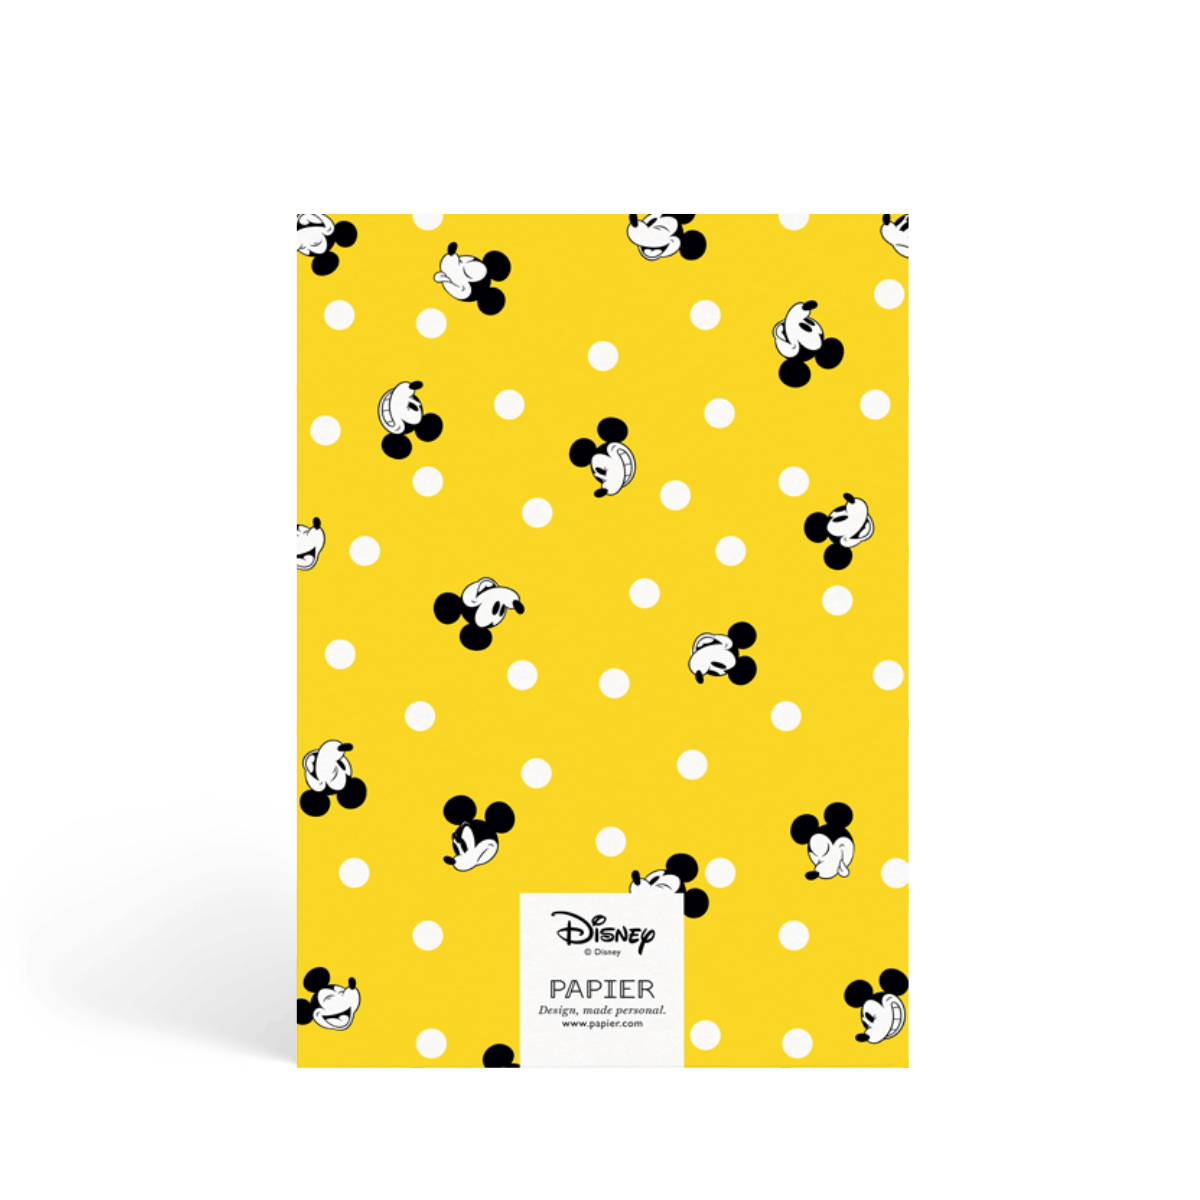 Https%3a%2f%2fwww.papier.com%2fproduct image%2f46614%2f5%2fmickey polka 11490 back 1536754539.png?ixlib=rb 1.1